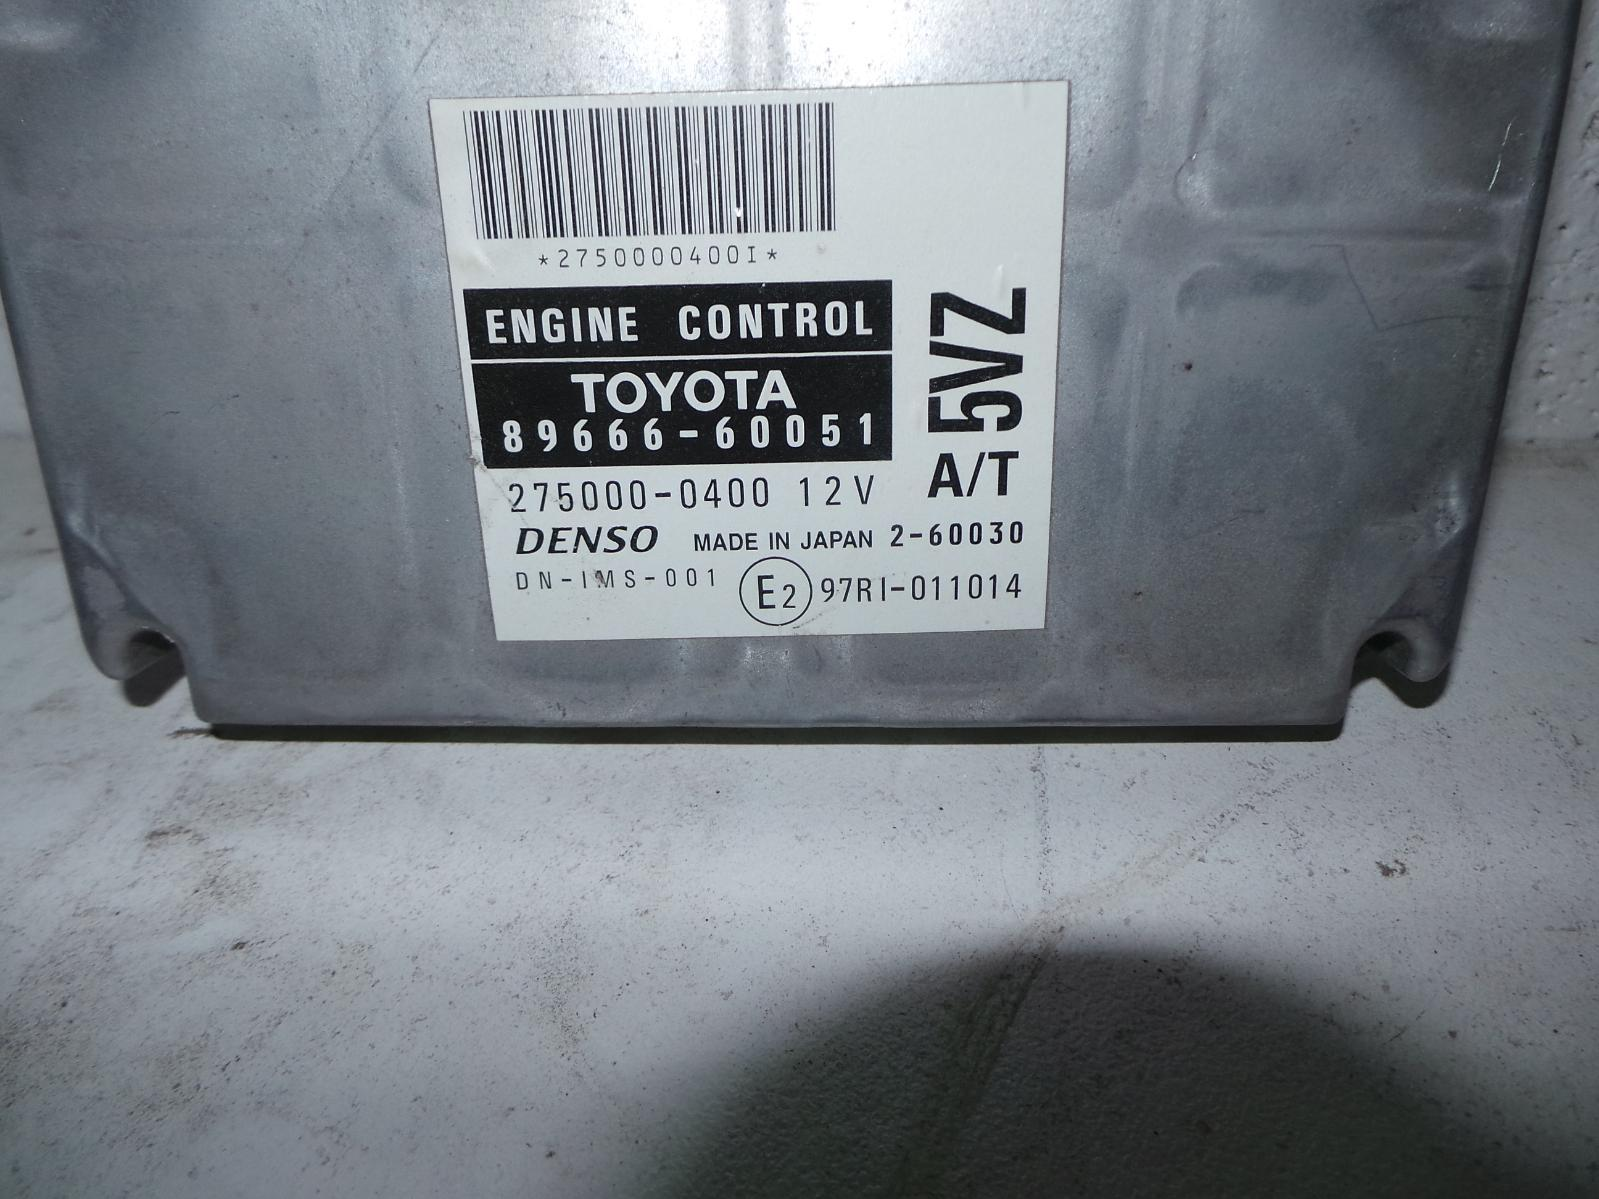 TOYOTA PRADO, Ecu, ENGINE ECU, 3.4, PETROL, AUTO, P/N 8966660051, ECU ONLY, 95 SERIES, 07/96-12/02